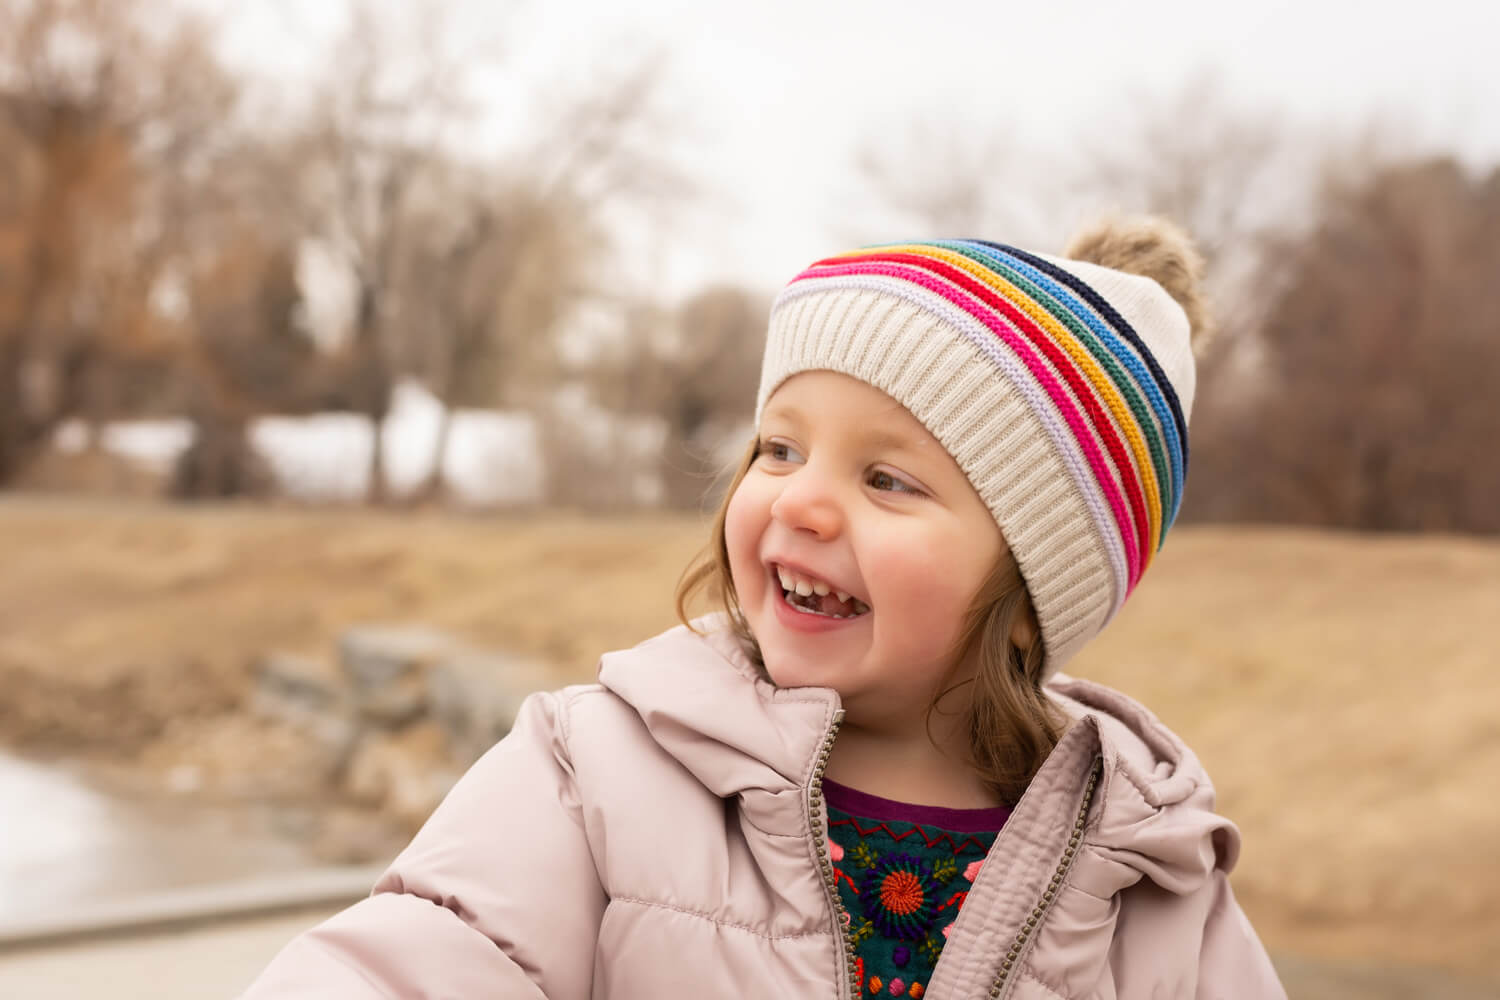 Portrait of a young girl wearing a rainbow striped hat laughing